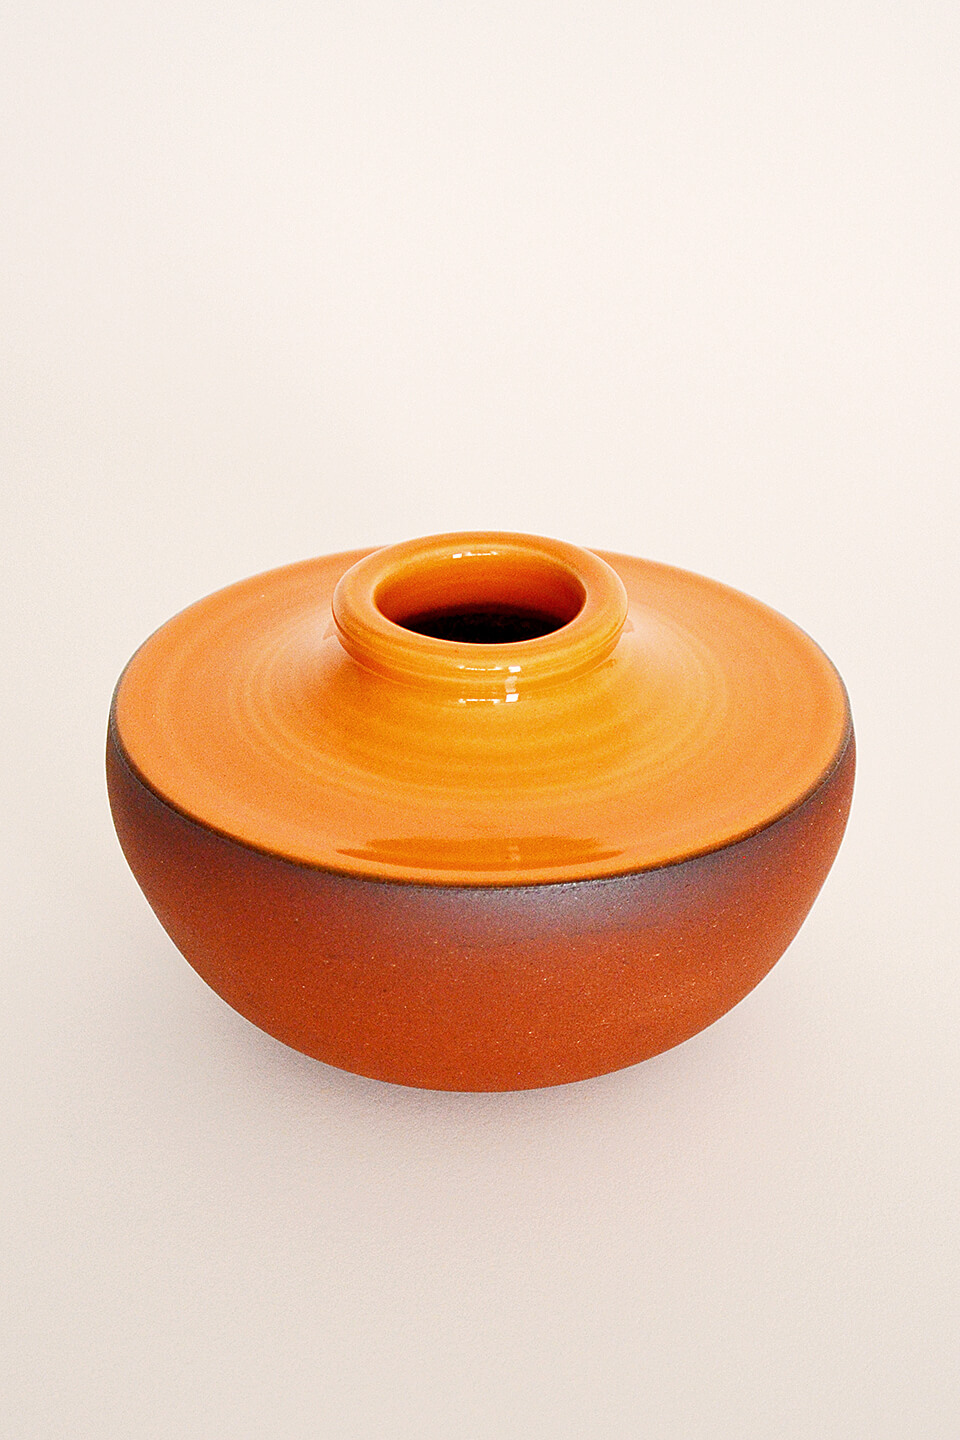 Orange Ceramic Vase No. 623